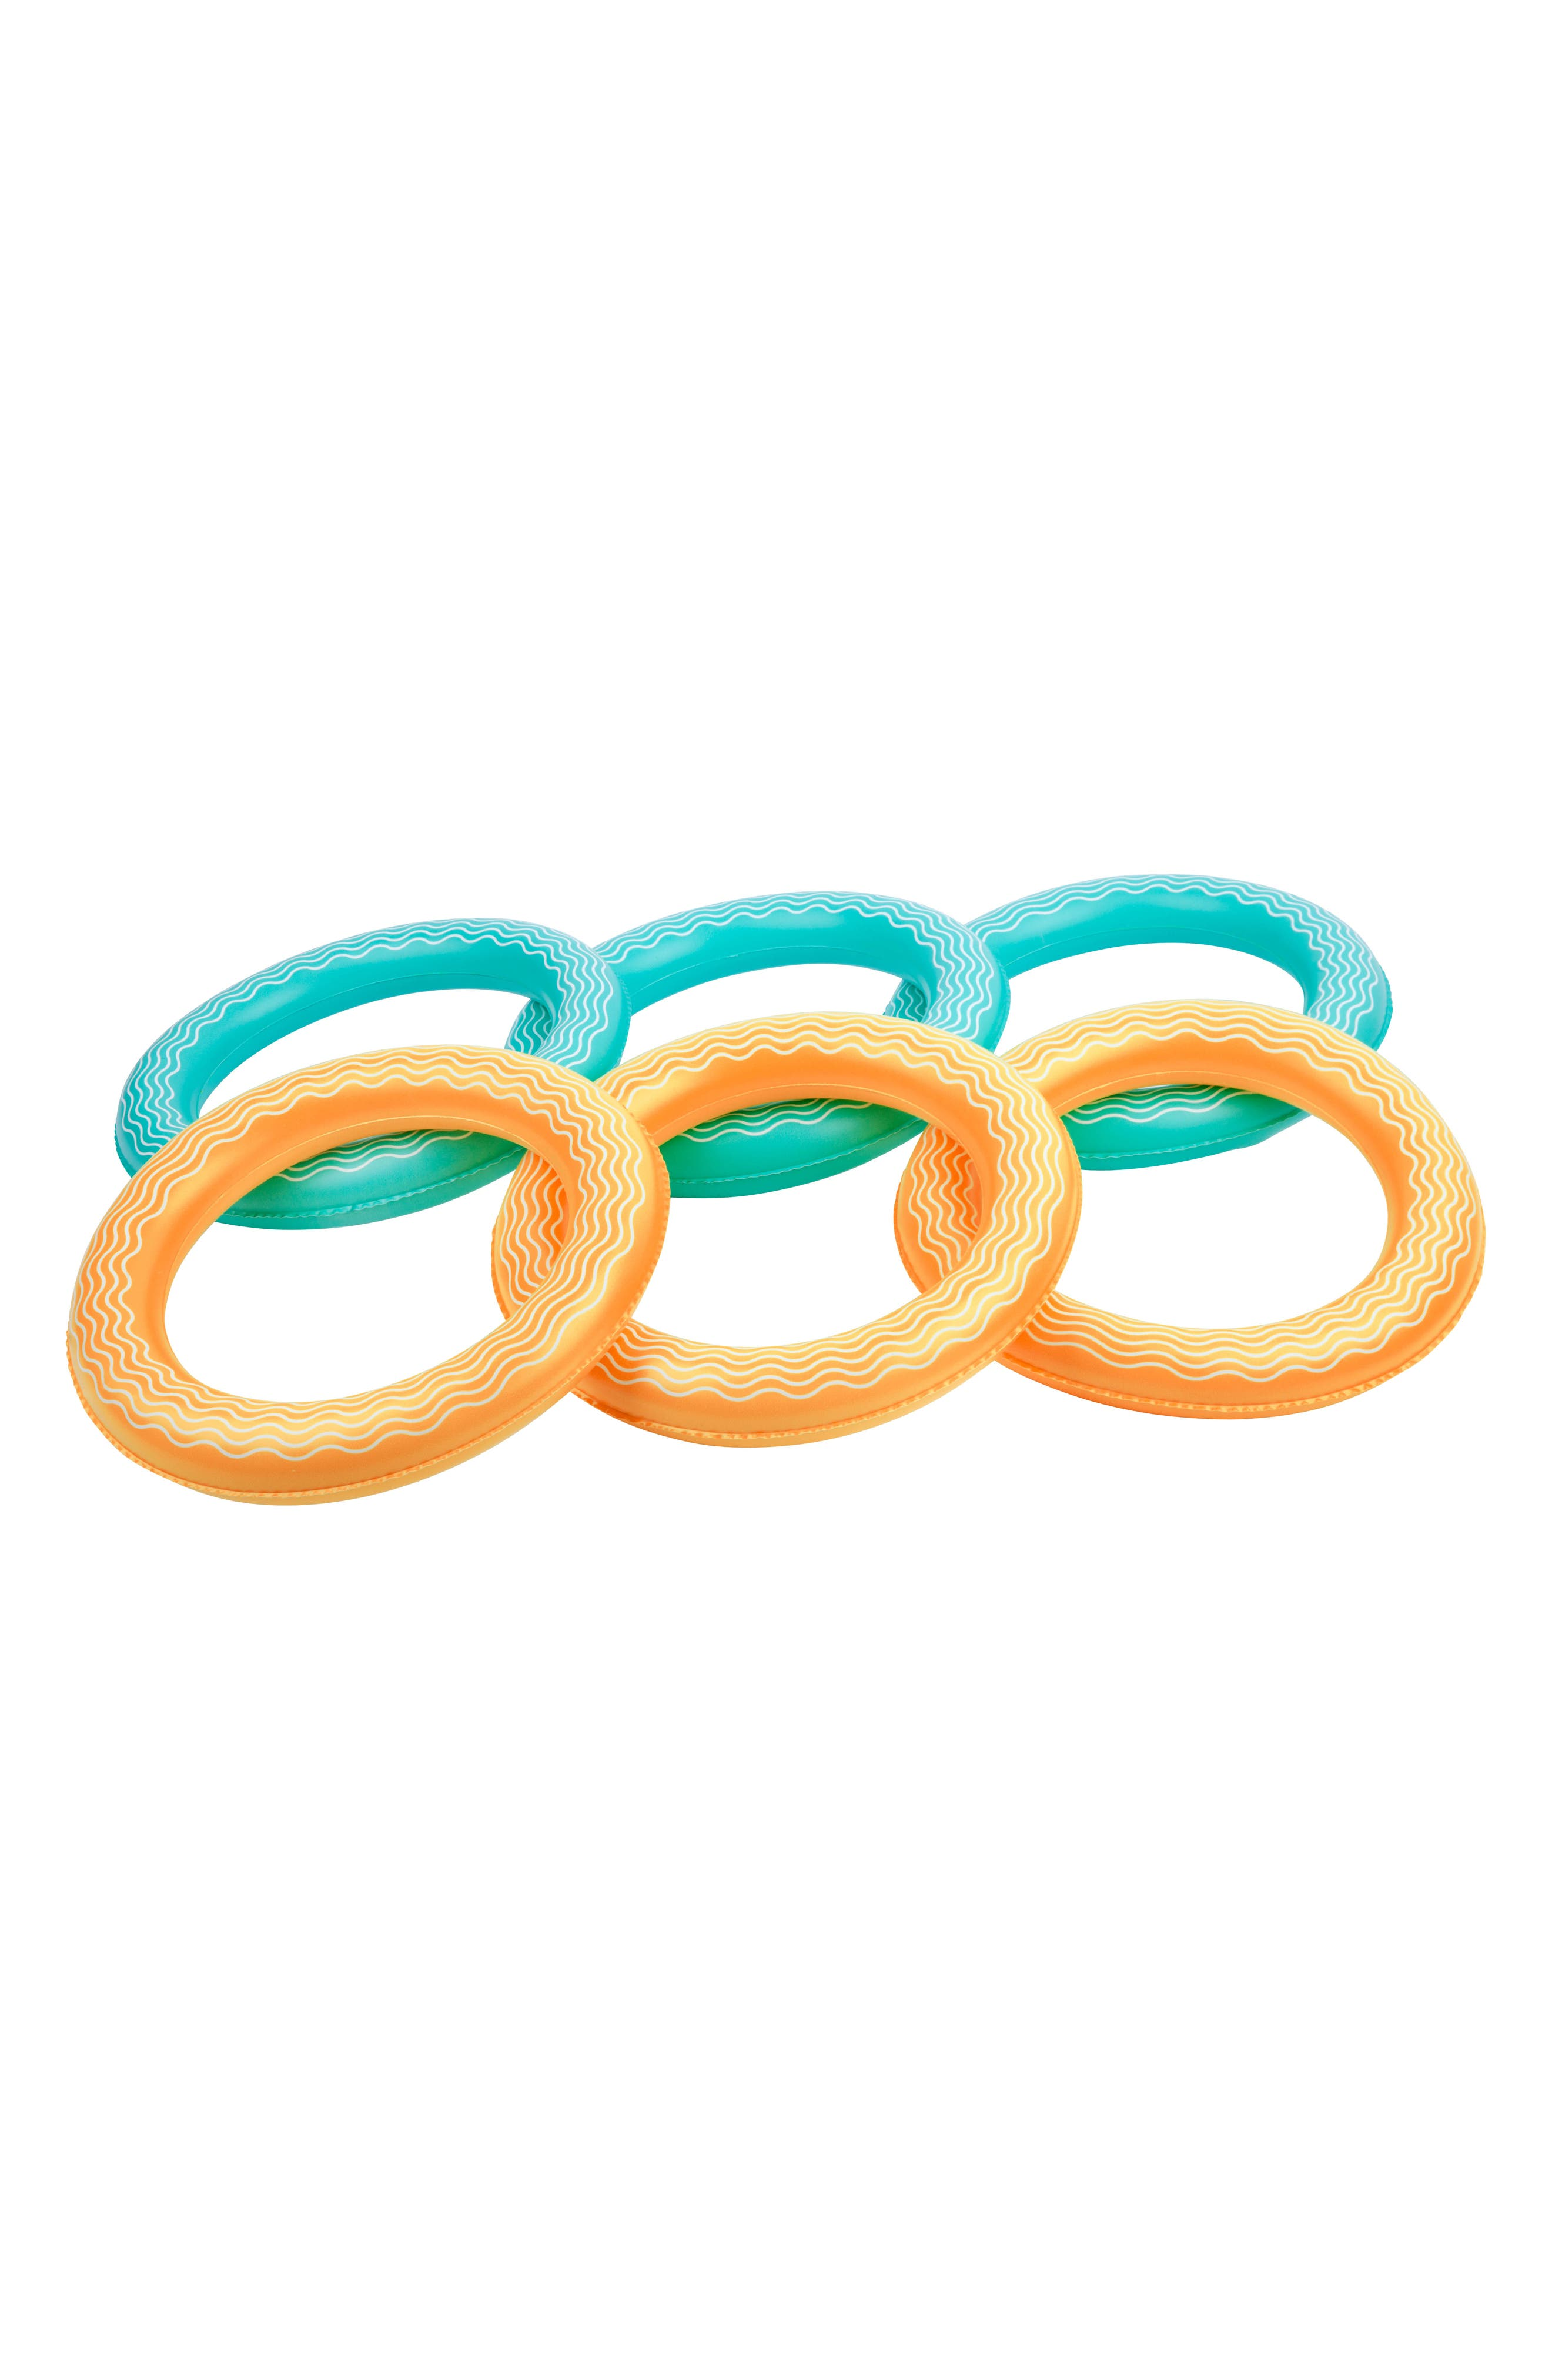 Inflatable Crab 7-Piece Ring Toss Game,                             Alternate thumbnail 3, color,                             600